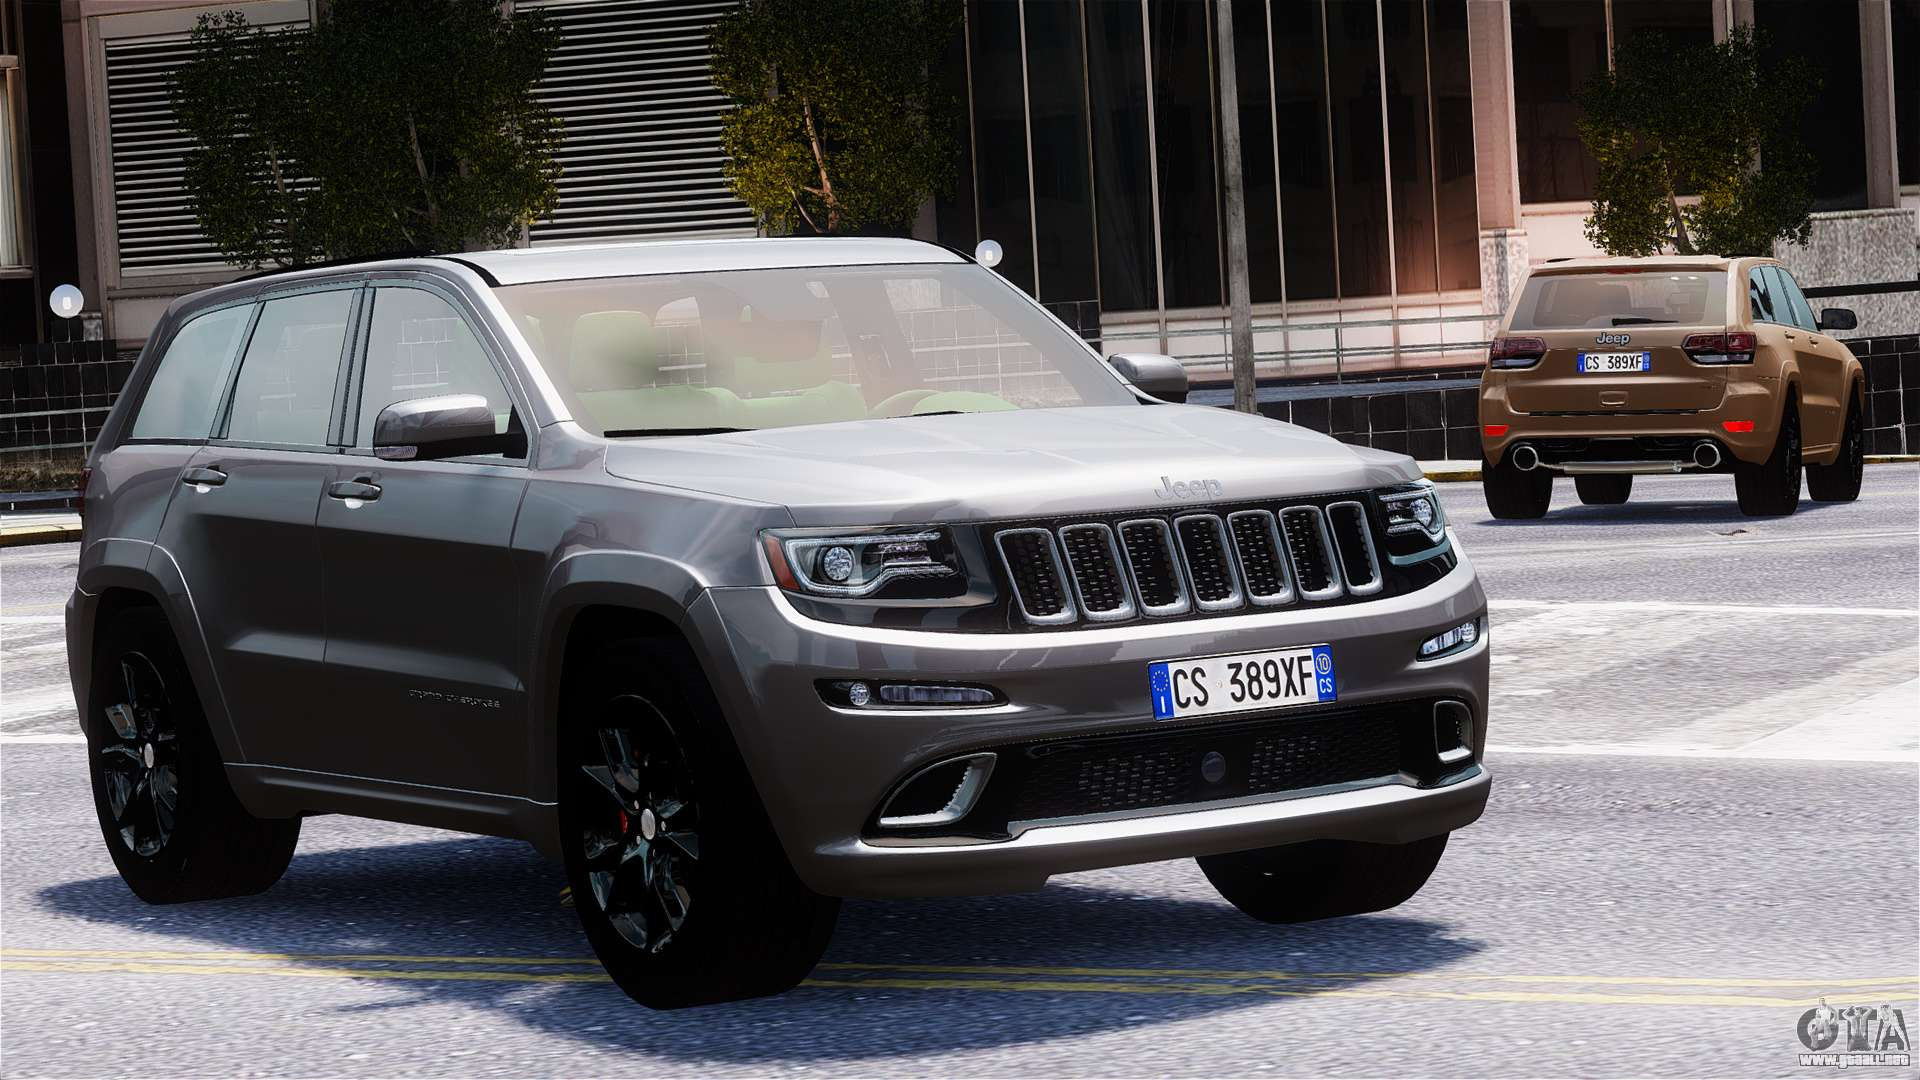 2015 jeep grand cherokee srt8 red vapor for sale autos post. Black Bedroom Furniture Sets. Home Design Ideas